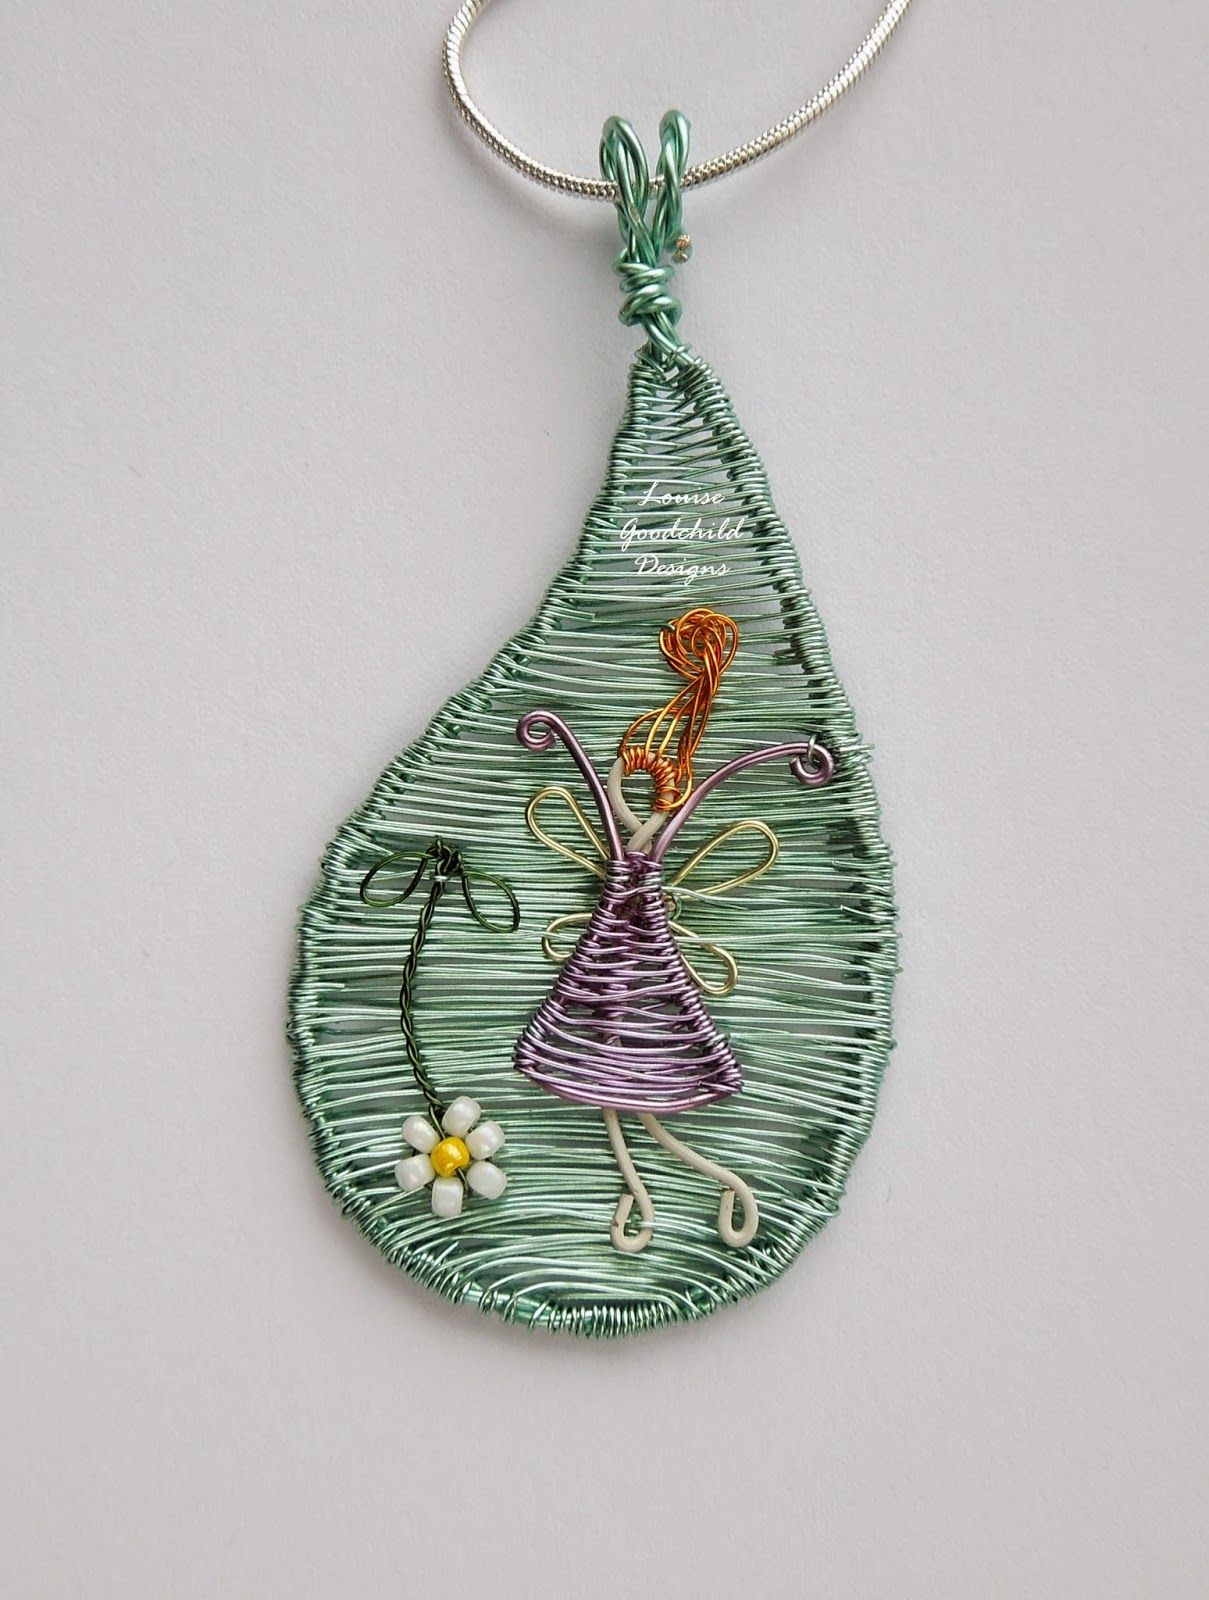 Louise Goodchild: Why Wire? | wire & metal jewellery | Pinterest ...